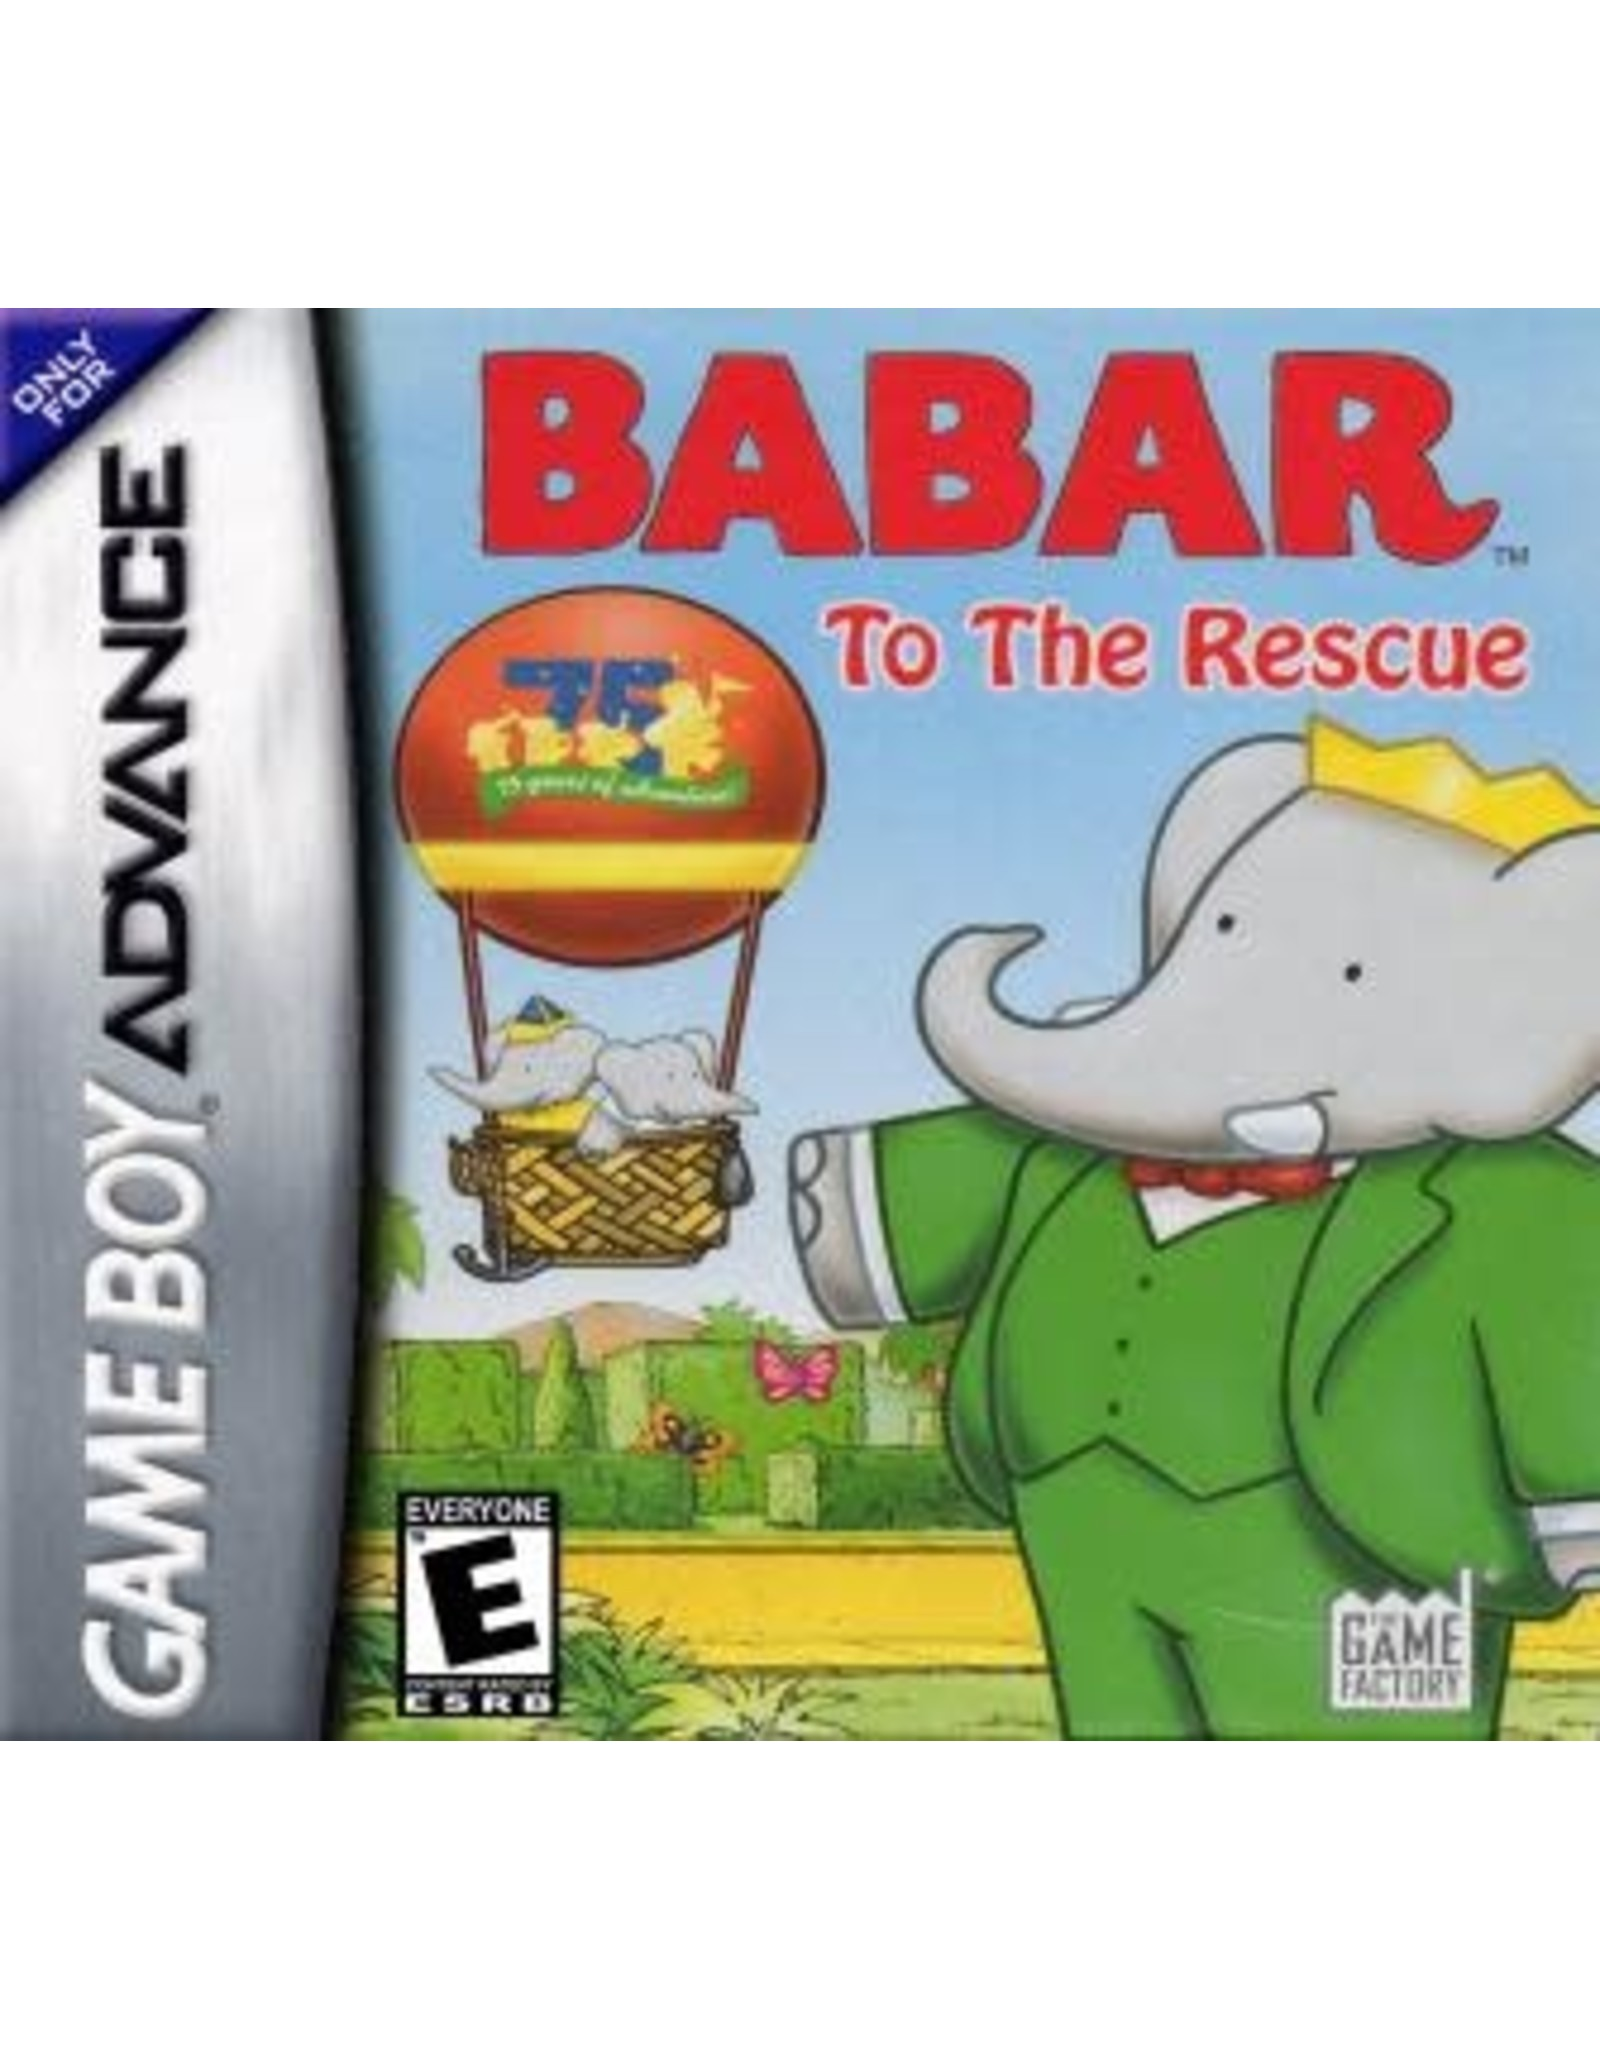 GameBoy Advance Babar: To the Rescue (Cart Only)